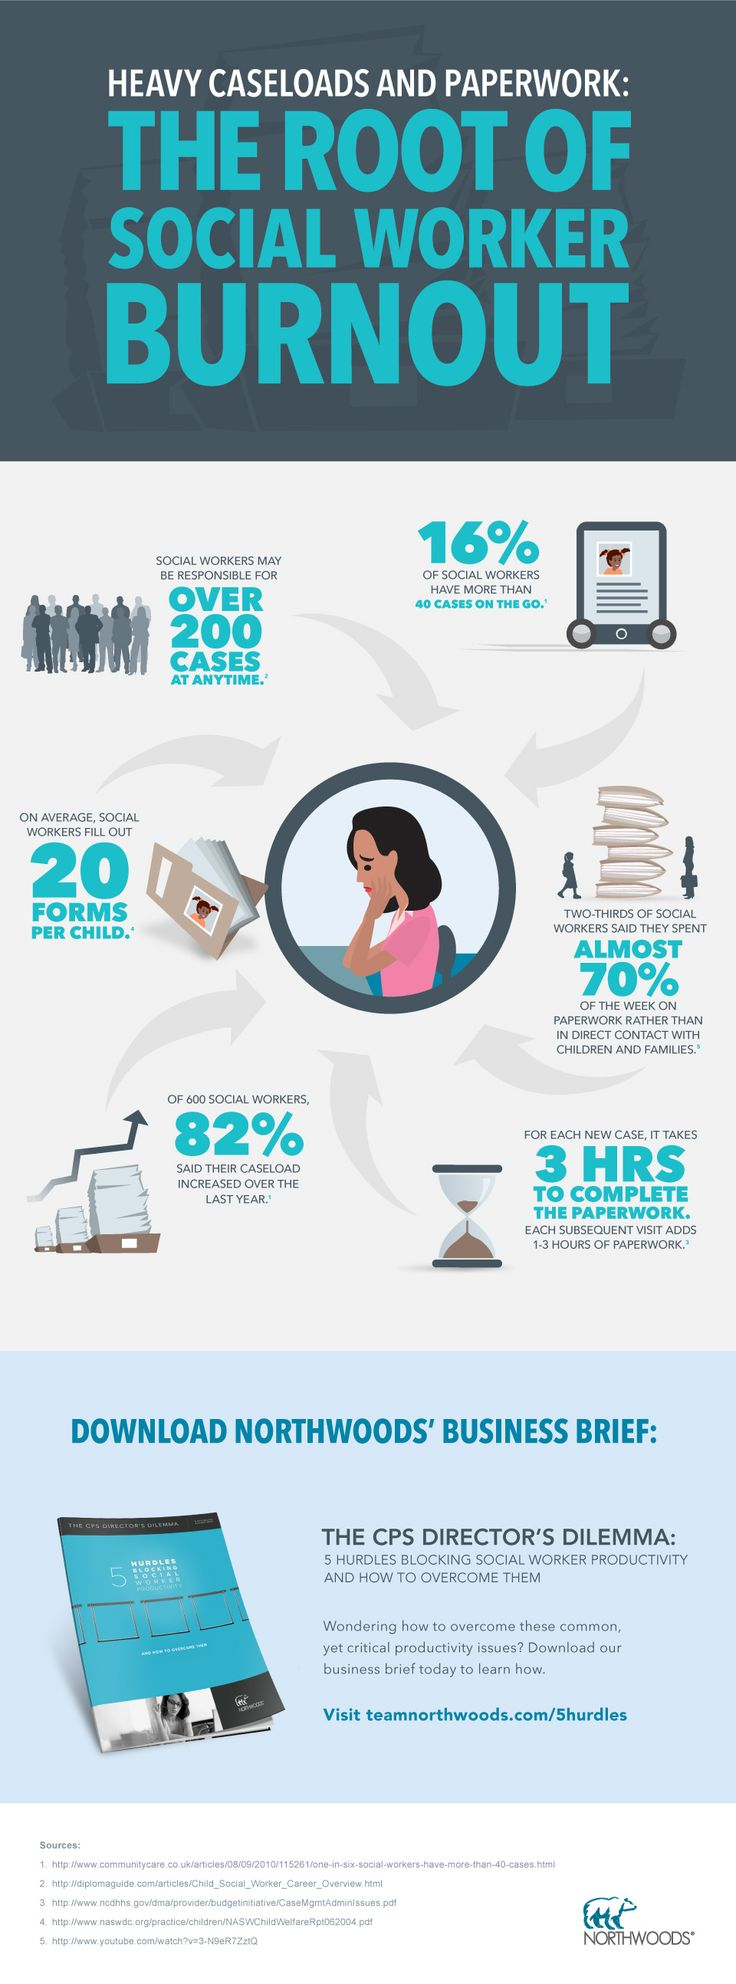 Heavy caseloads and paperwork: the root of social worker burnout [Infographic] #socialwork